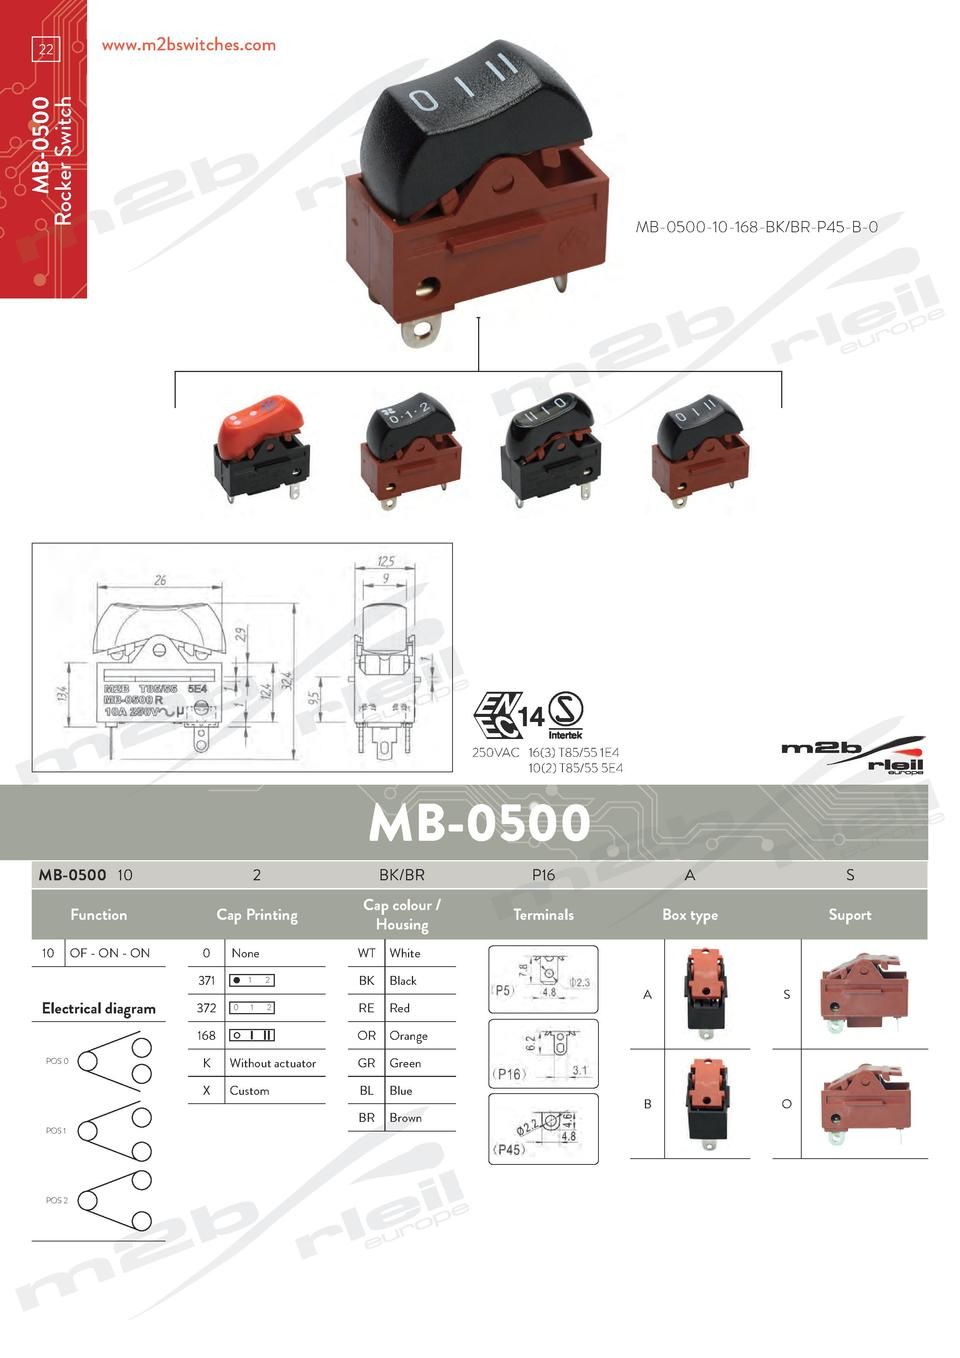 www.m2bswitches.com  MB-0500 Rocker Switch  22  MB-0500-10-168-BK BR-P45-B-0  250VAC  16 3  T85 55 1E4   10 2  T85 55 5E4 ...